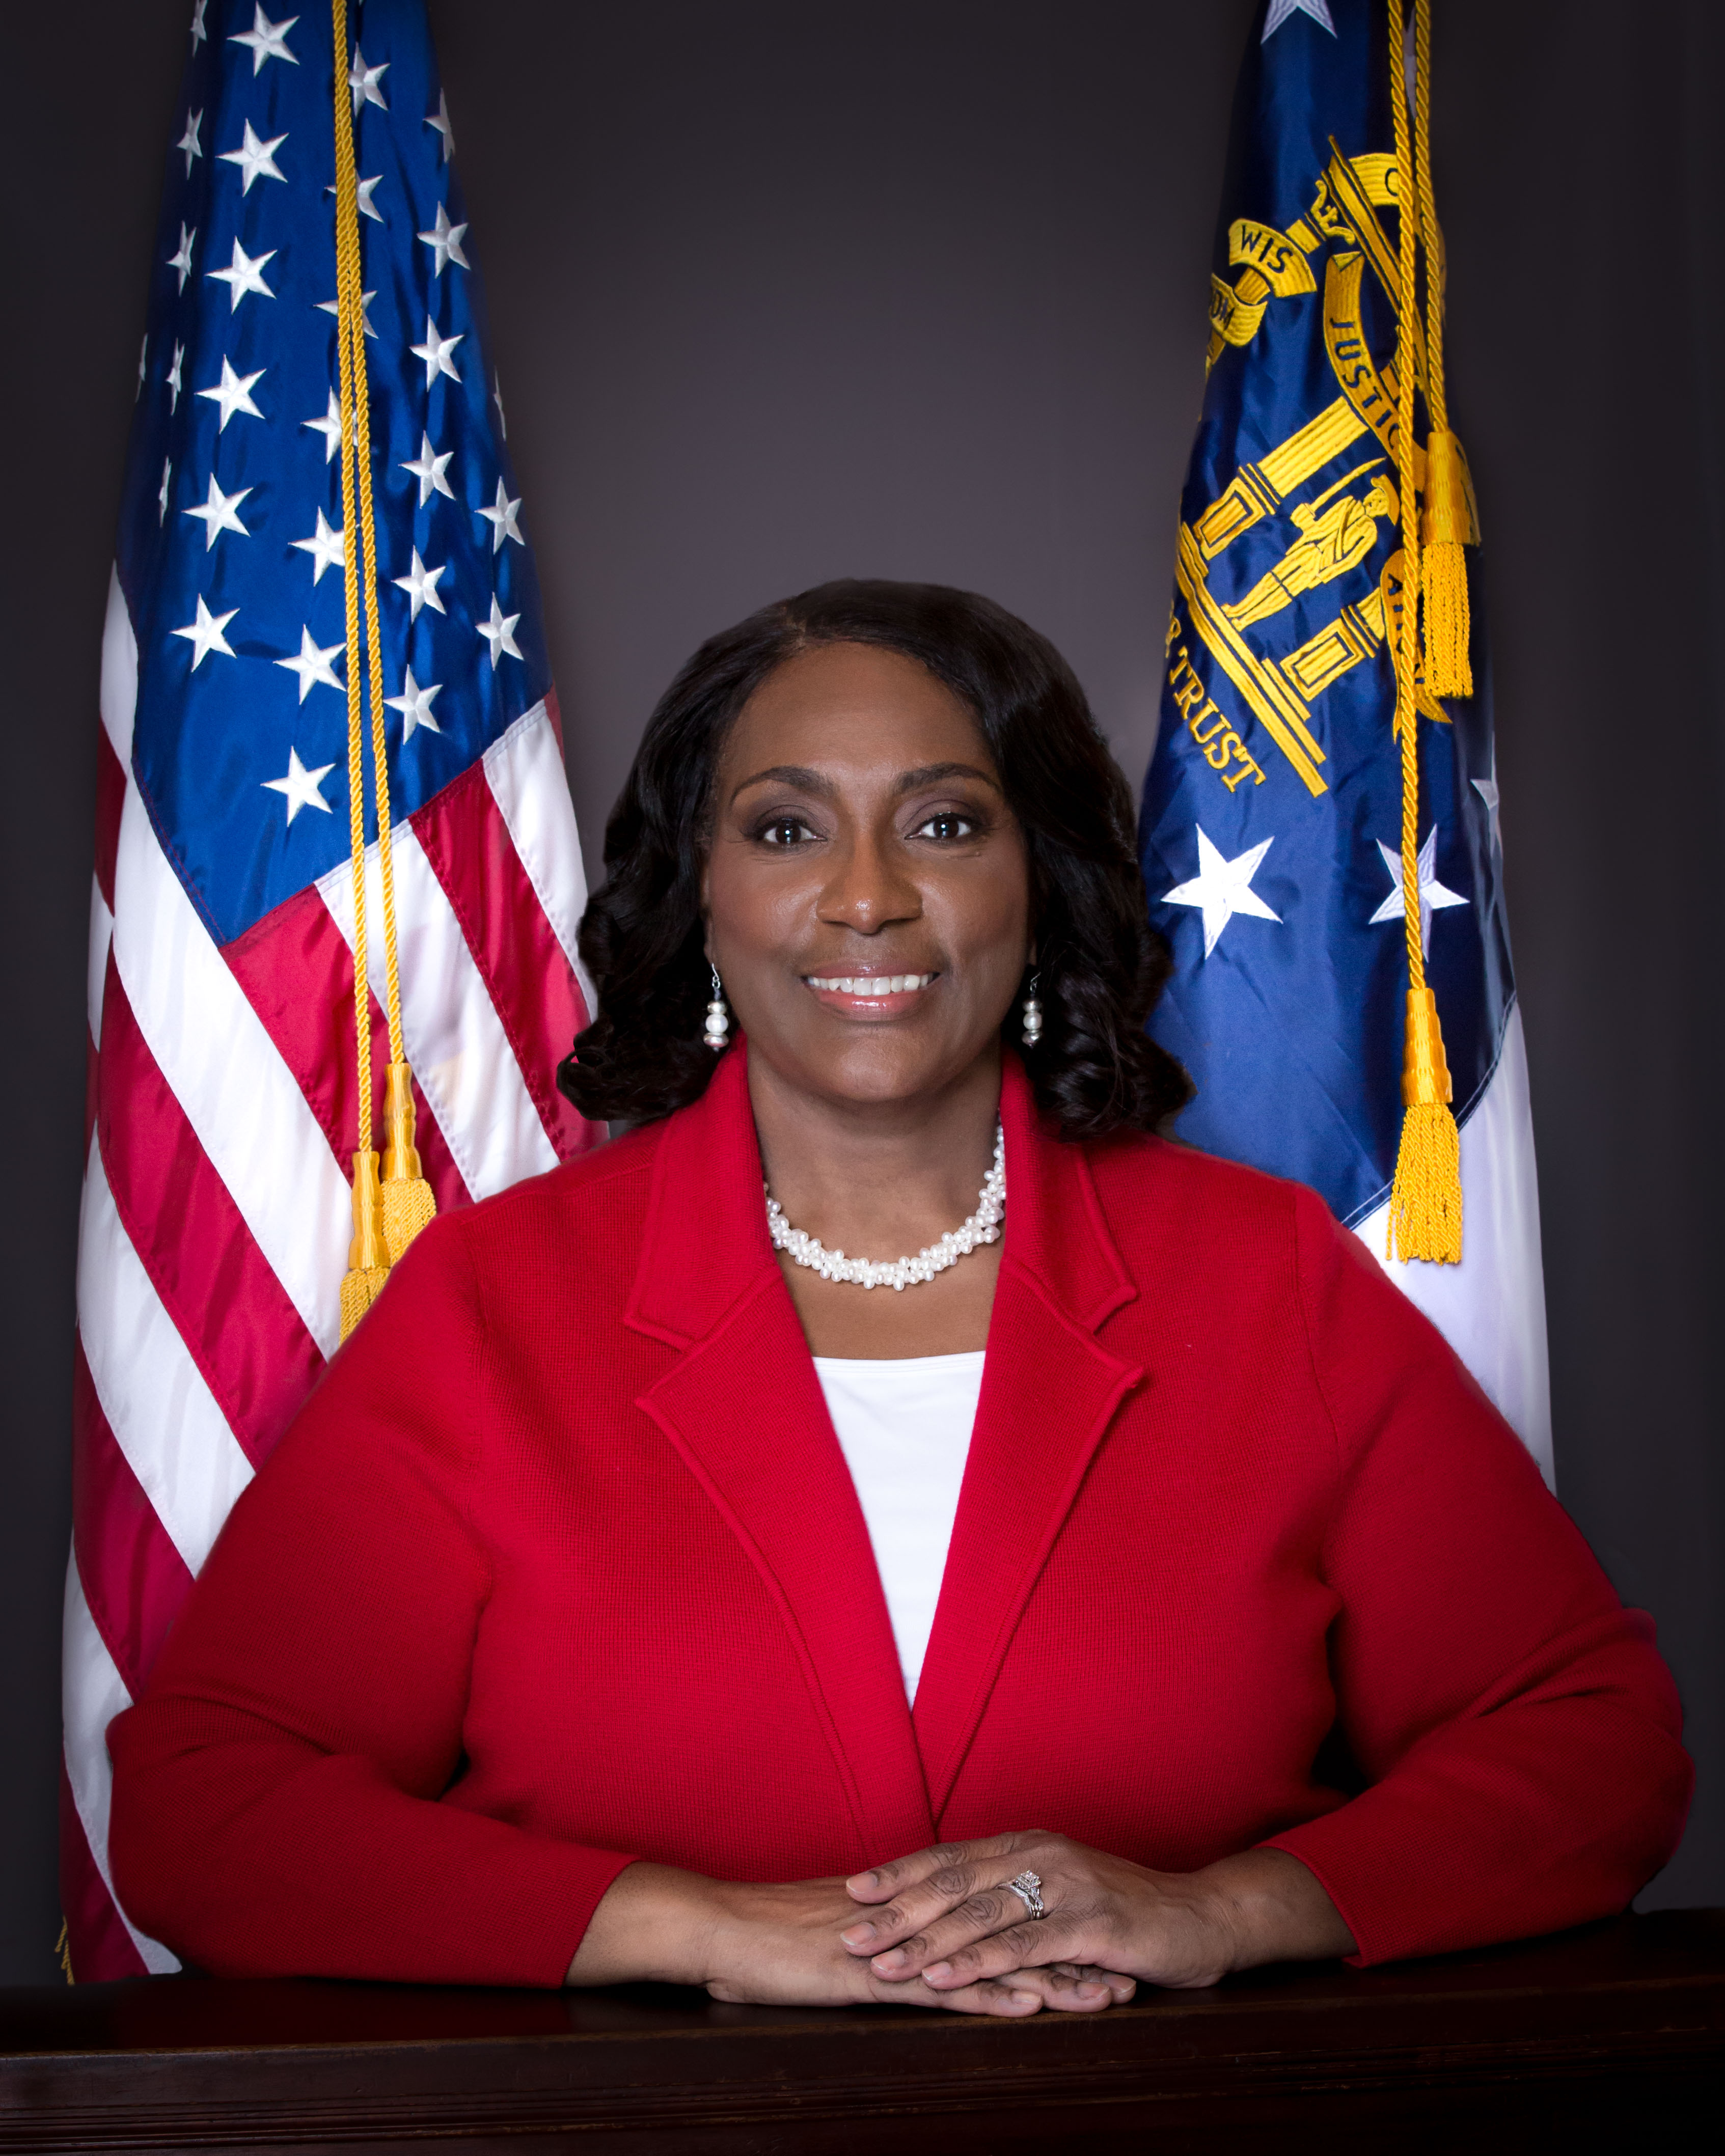 Shabazz_District 5_Savannah_Officials